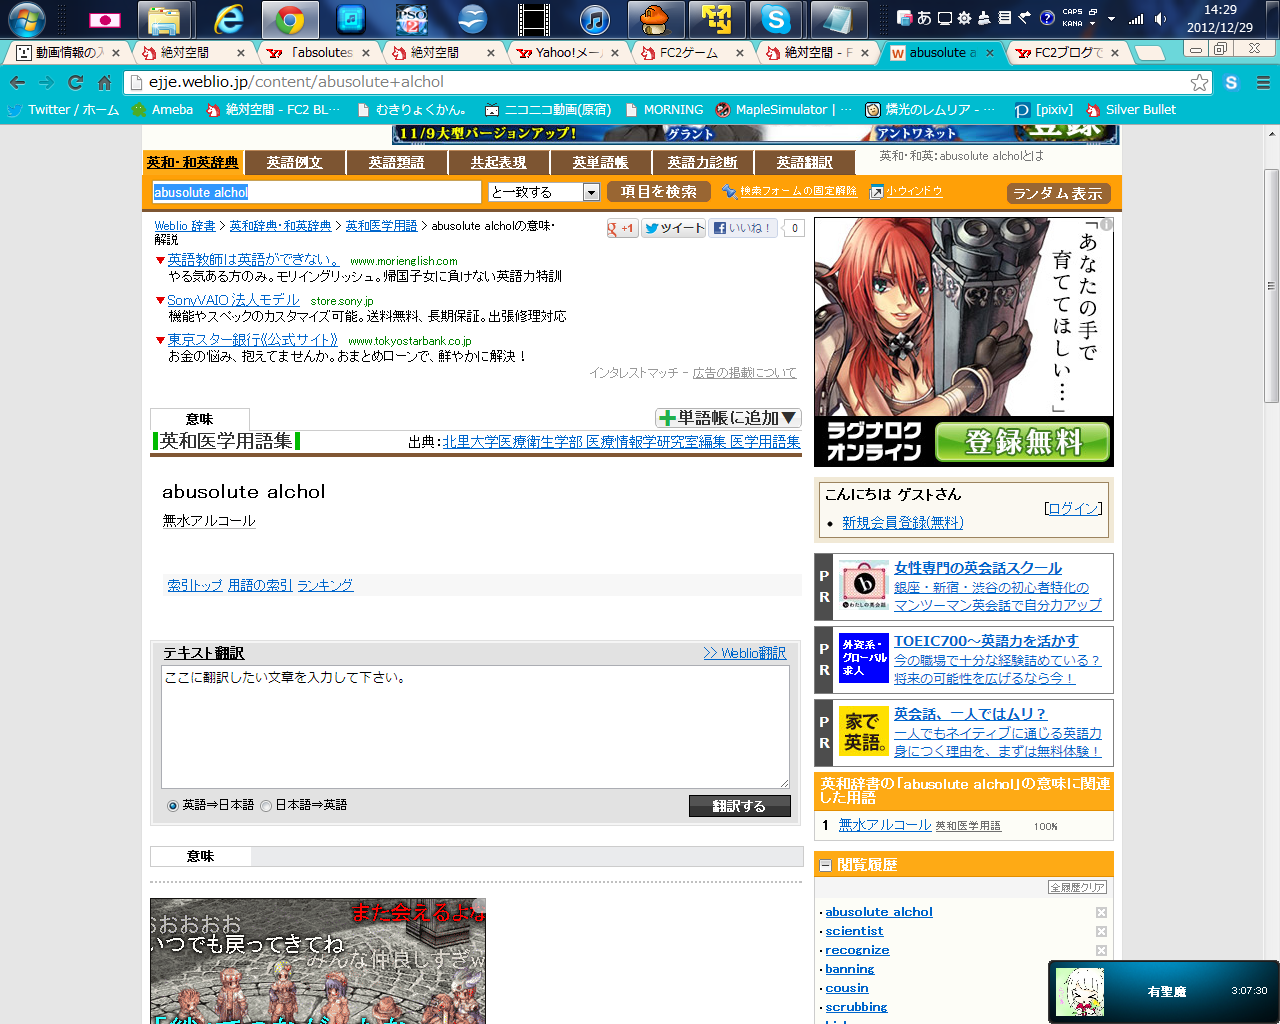 20121229143058a3a.png